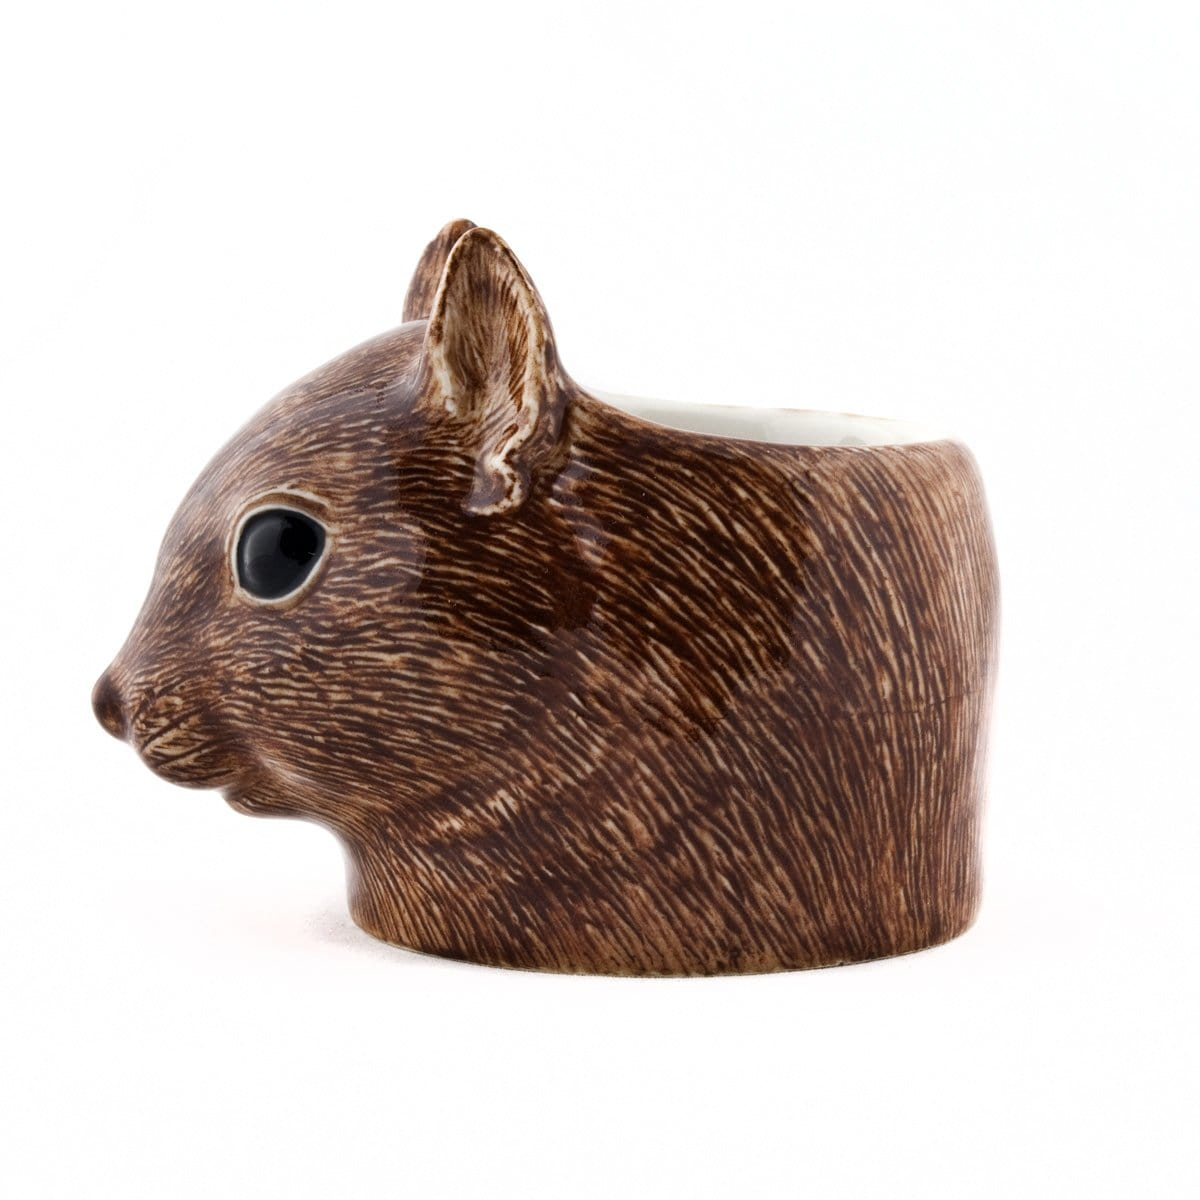 Squirrel face - egg cup